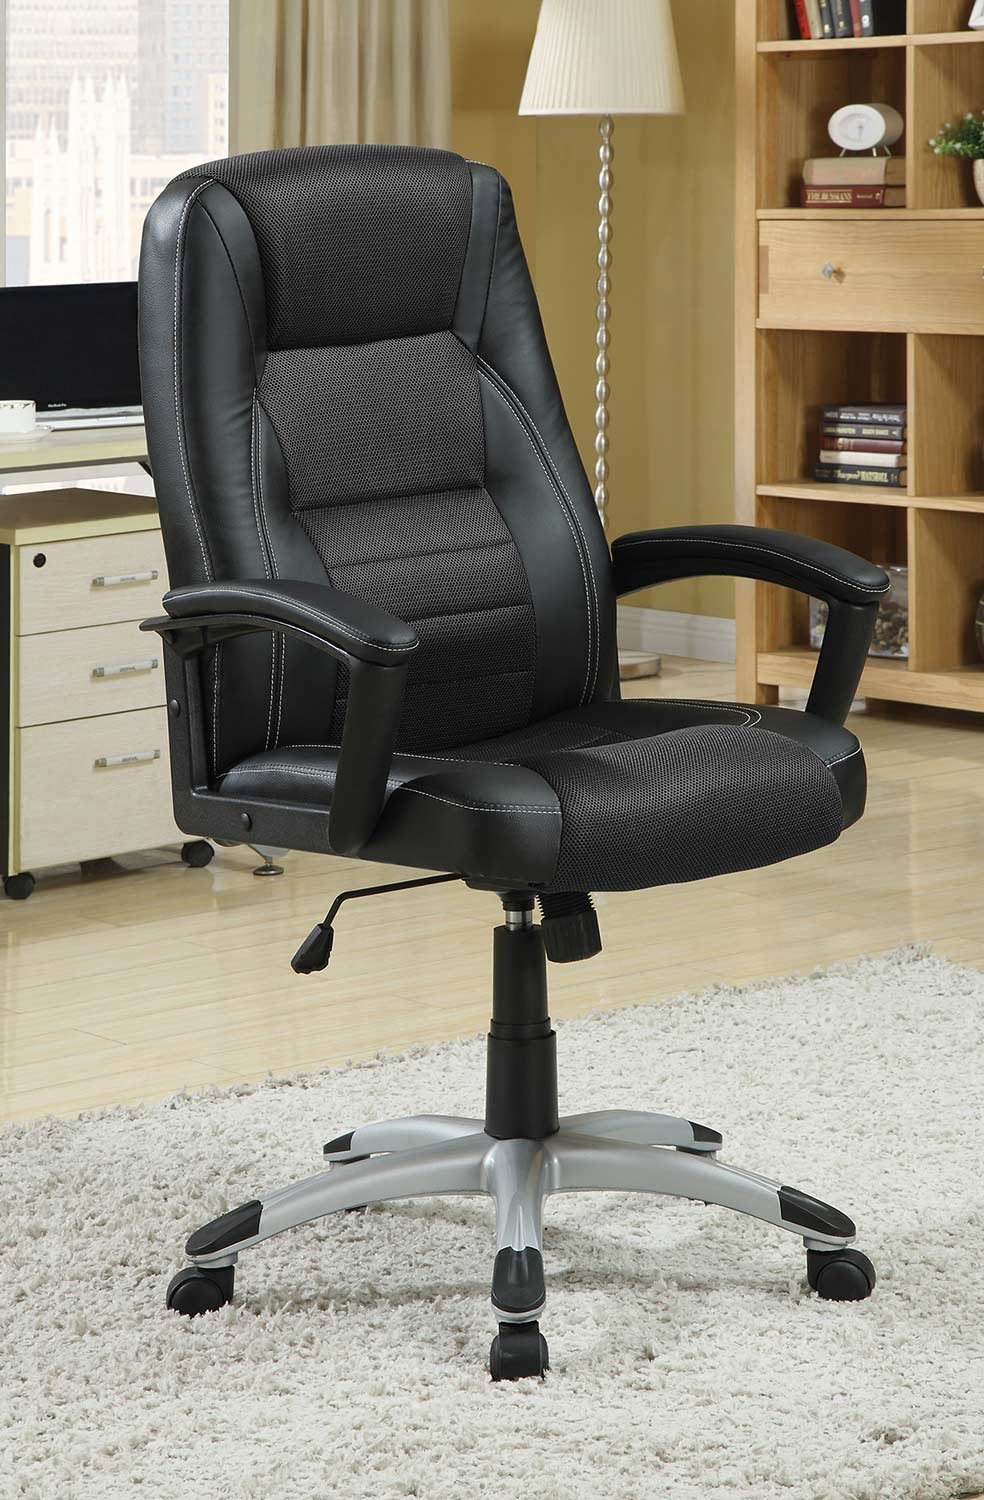 Coaster 800209 Office Chair - Black